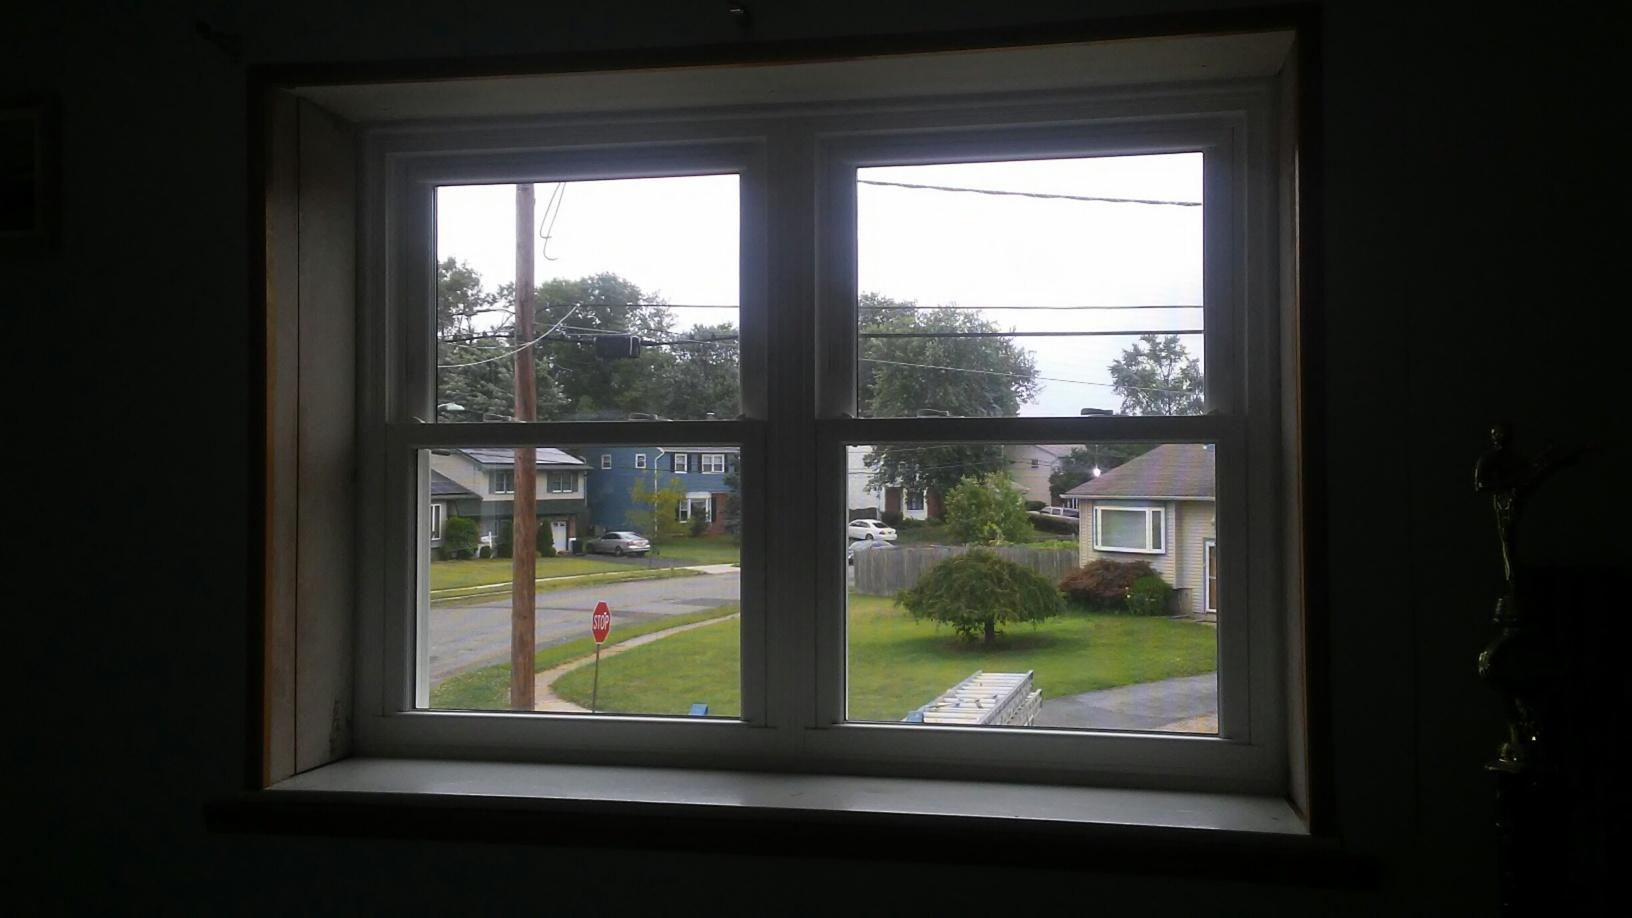 Interior View of GlobalTech Window Install in Edgewater Park, NJ